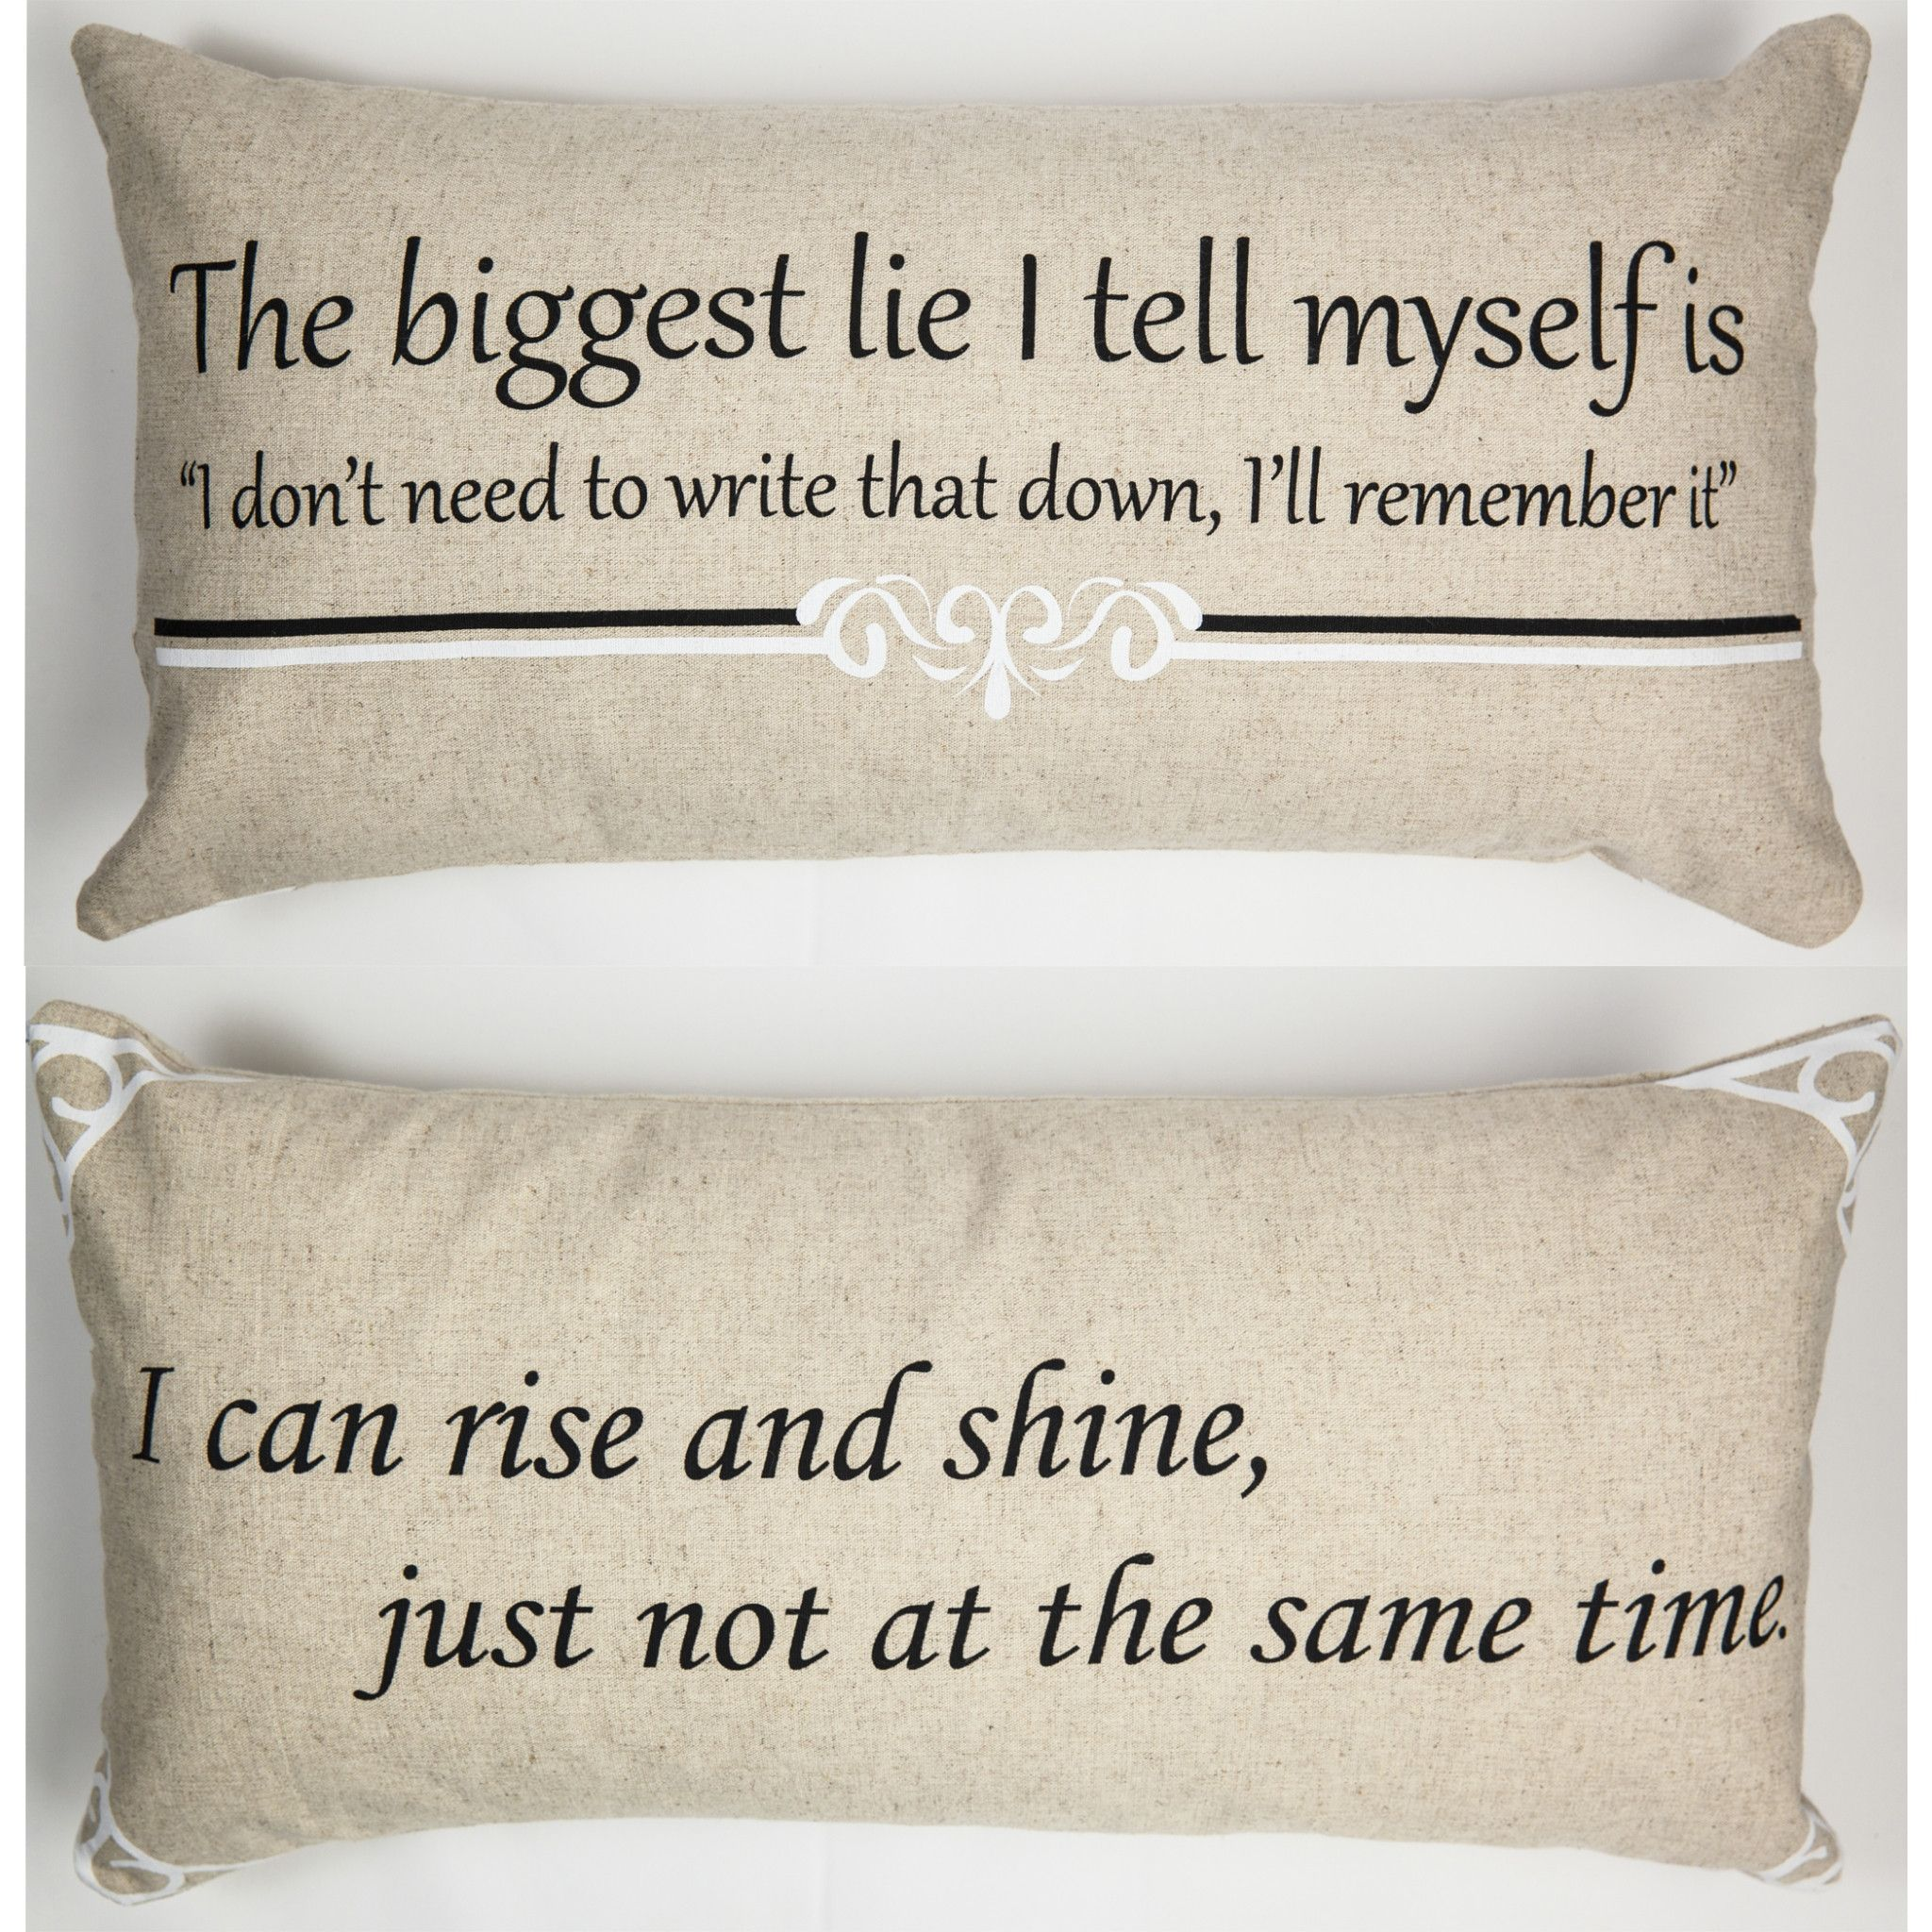 "FRONT - The biggest lie I tell myself is ""I don't need to write that down I'll remember it. BACK- I can rise and shine, just not at the same time. Our pillows have coordinated sayings and original des"